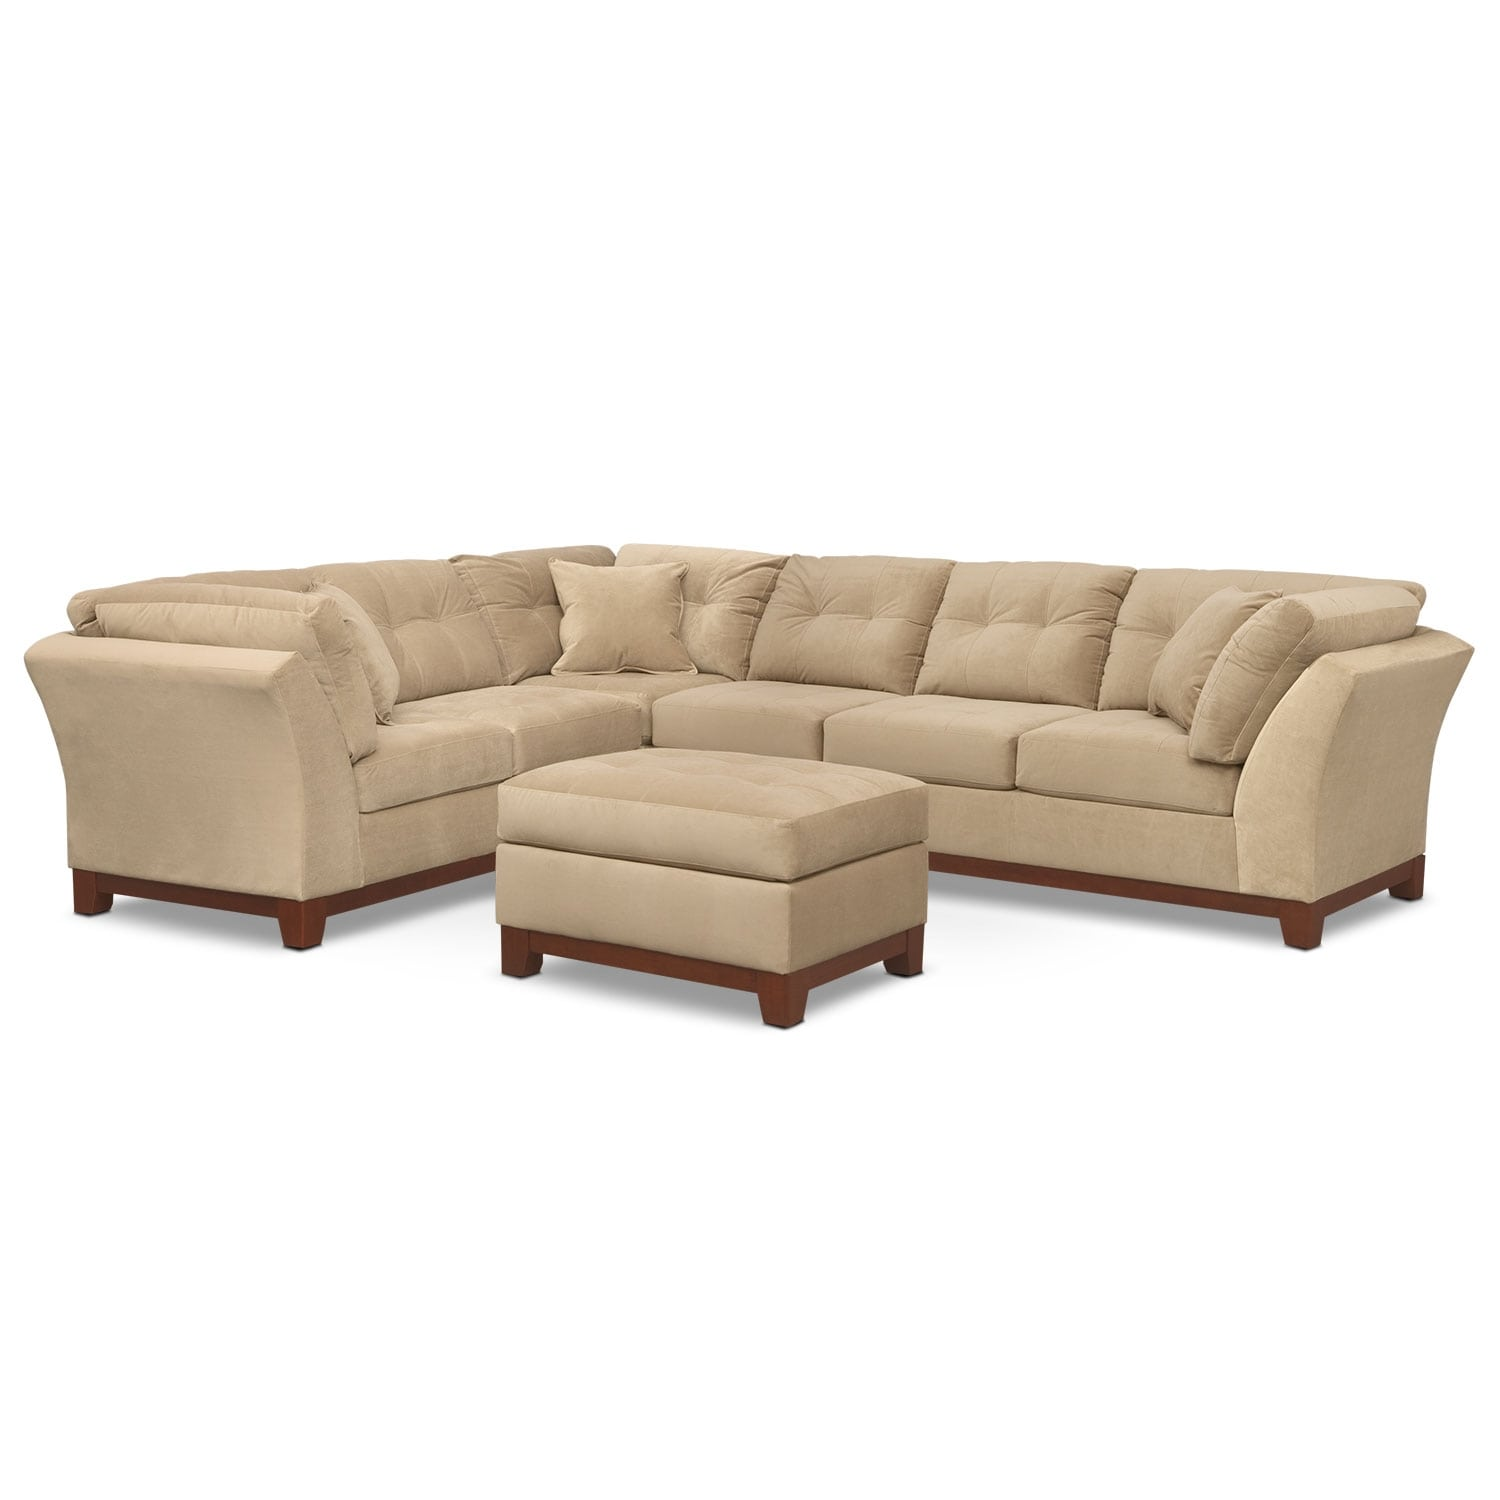 Living Room Furniture - Solace Cocoa II 3 Pc. Sectional and Ottoman